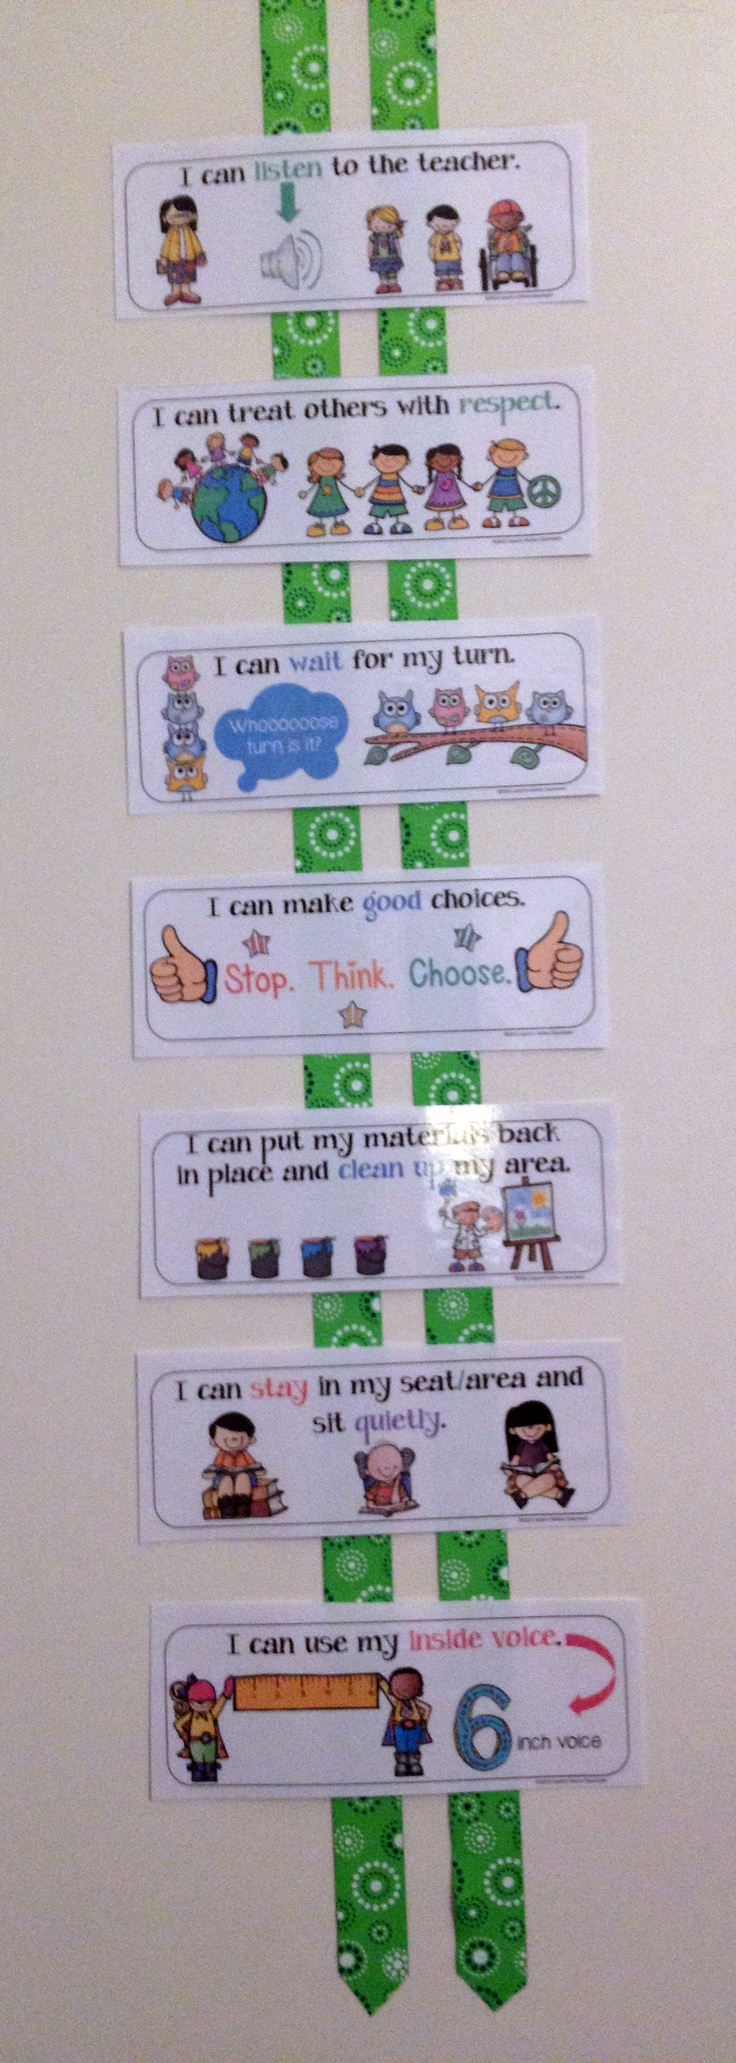 "This resource includes 14 illustrated classroom rules posters written in familiar ""I can..."" style language. The posters are formated so that 2 rules (posters) print per 1 page of paper in landscape format. All you have to do is cut directly down the middle of the page on the dotted line and the resource is ready to use. Formatting allows for easy lamination and can be used in a variety of ways including pocket charts or classroom rules bulletin board displays. $$"